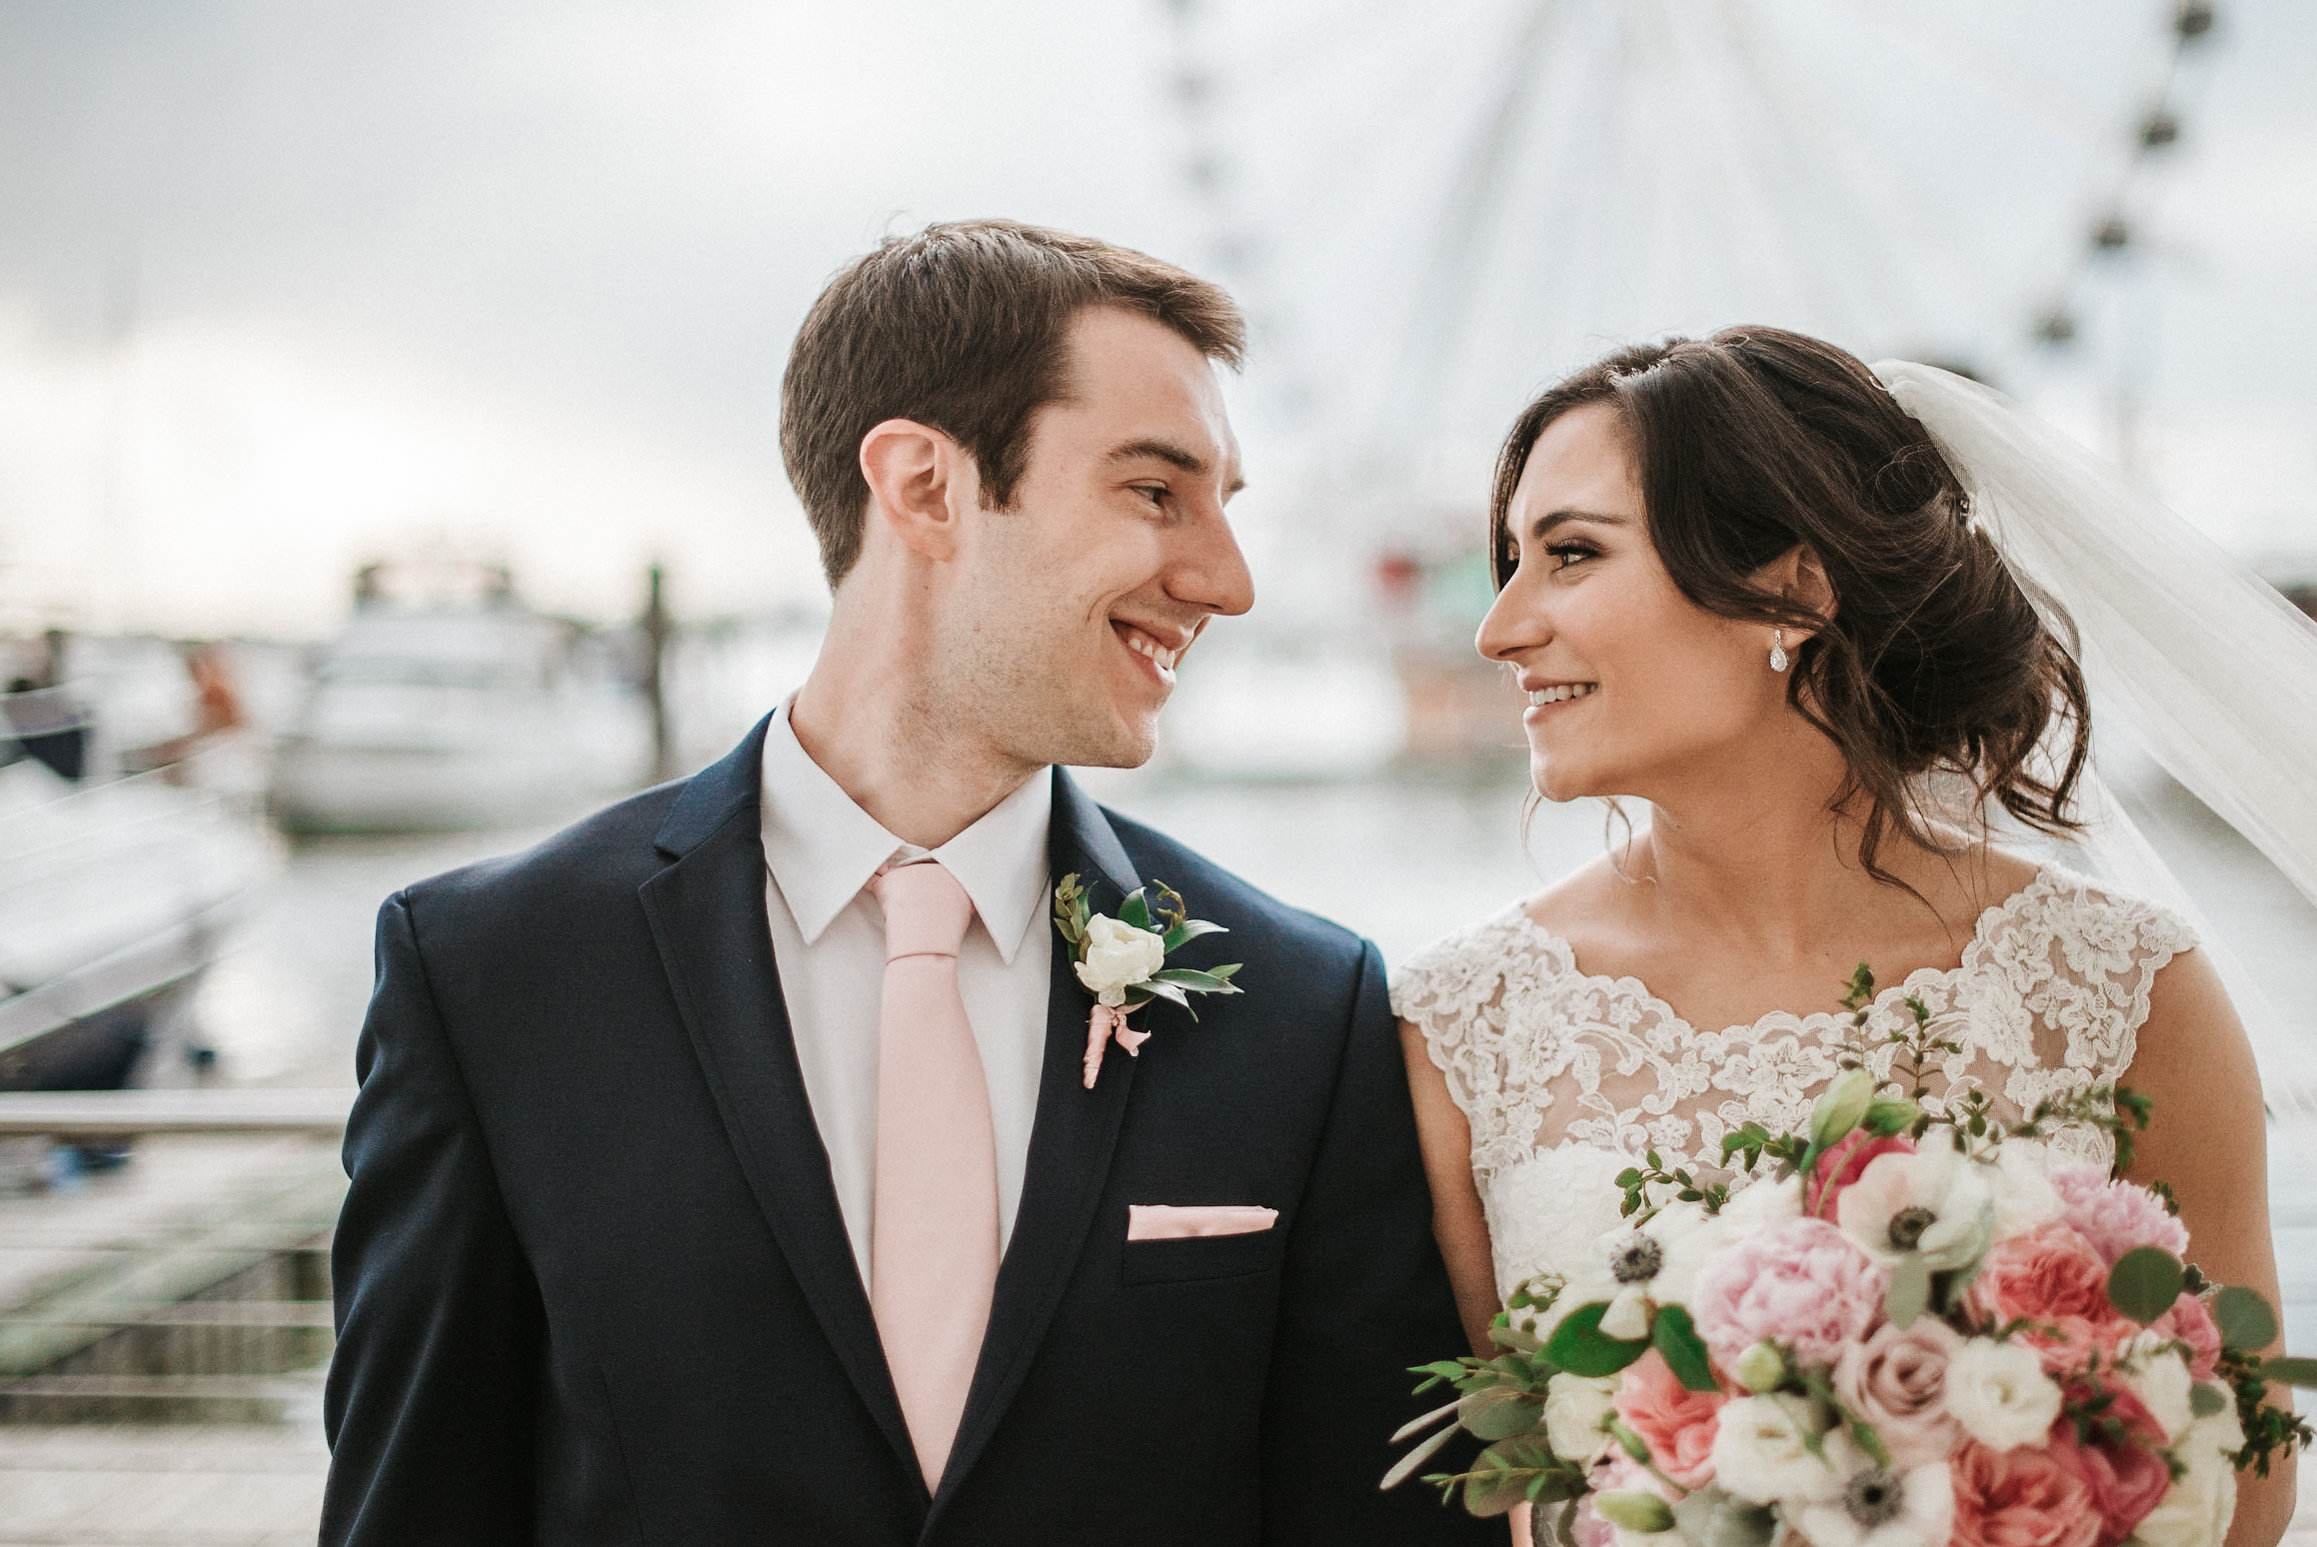 Bride and groom smiling at one another in front of ferris wheel